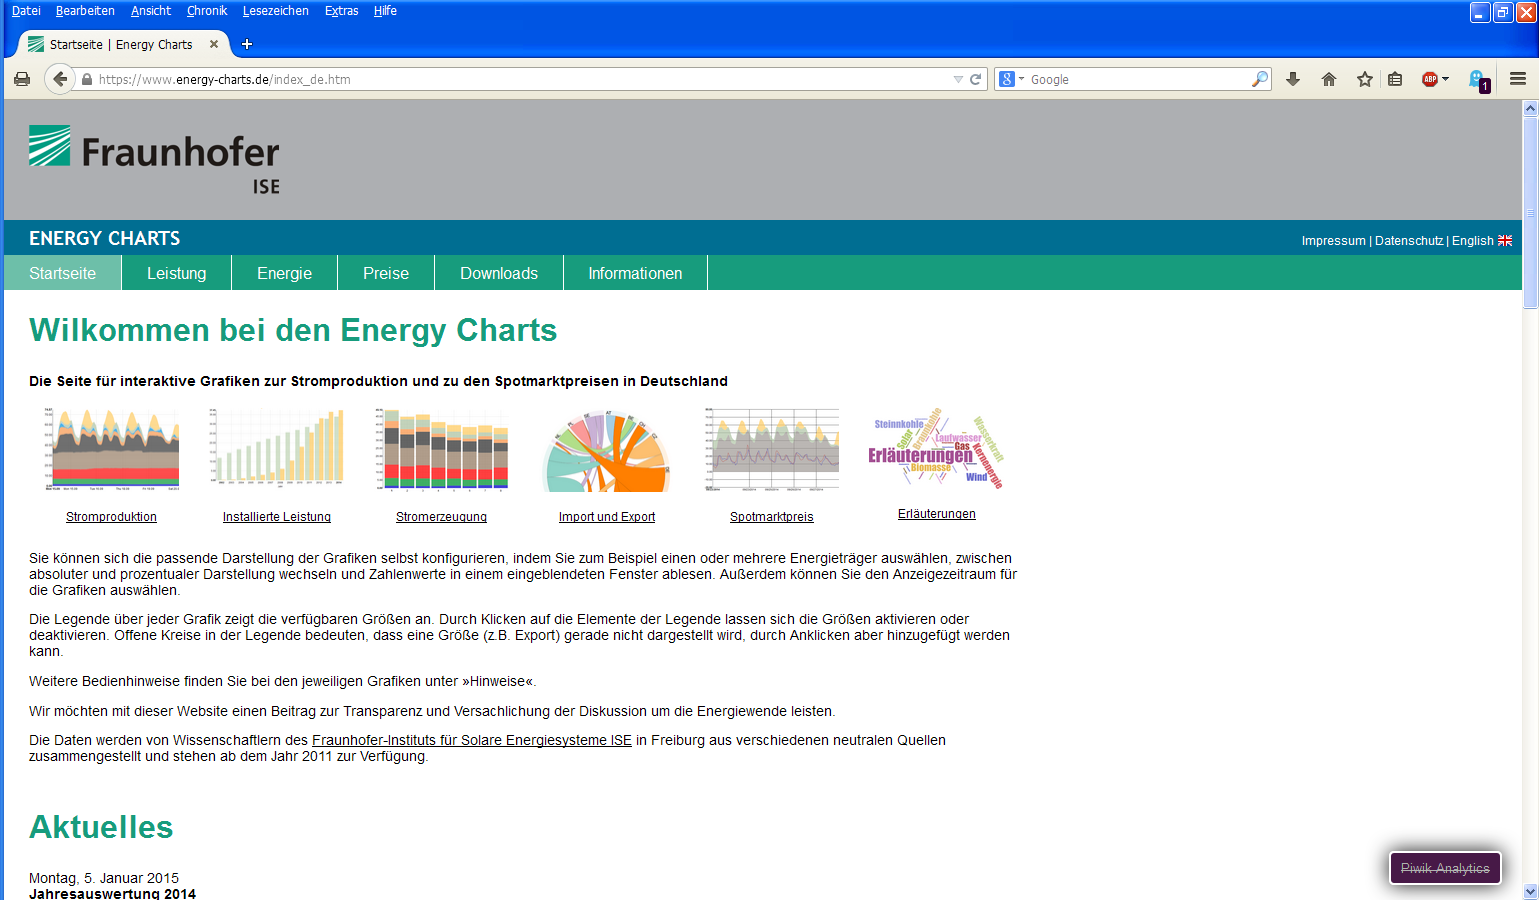 Datenquelle Fraunhofer ISE www.energy-charts.